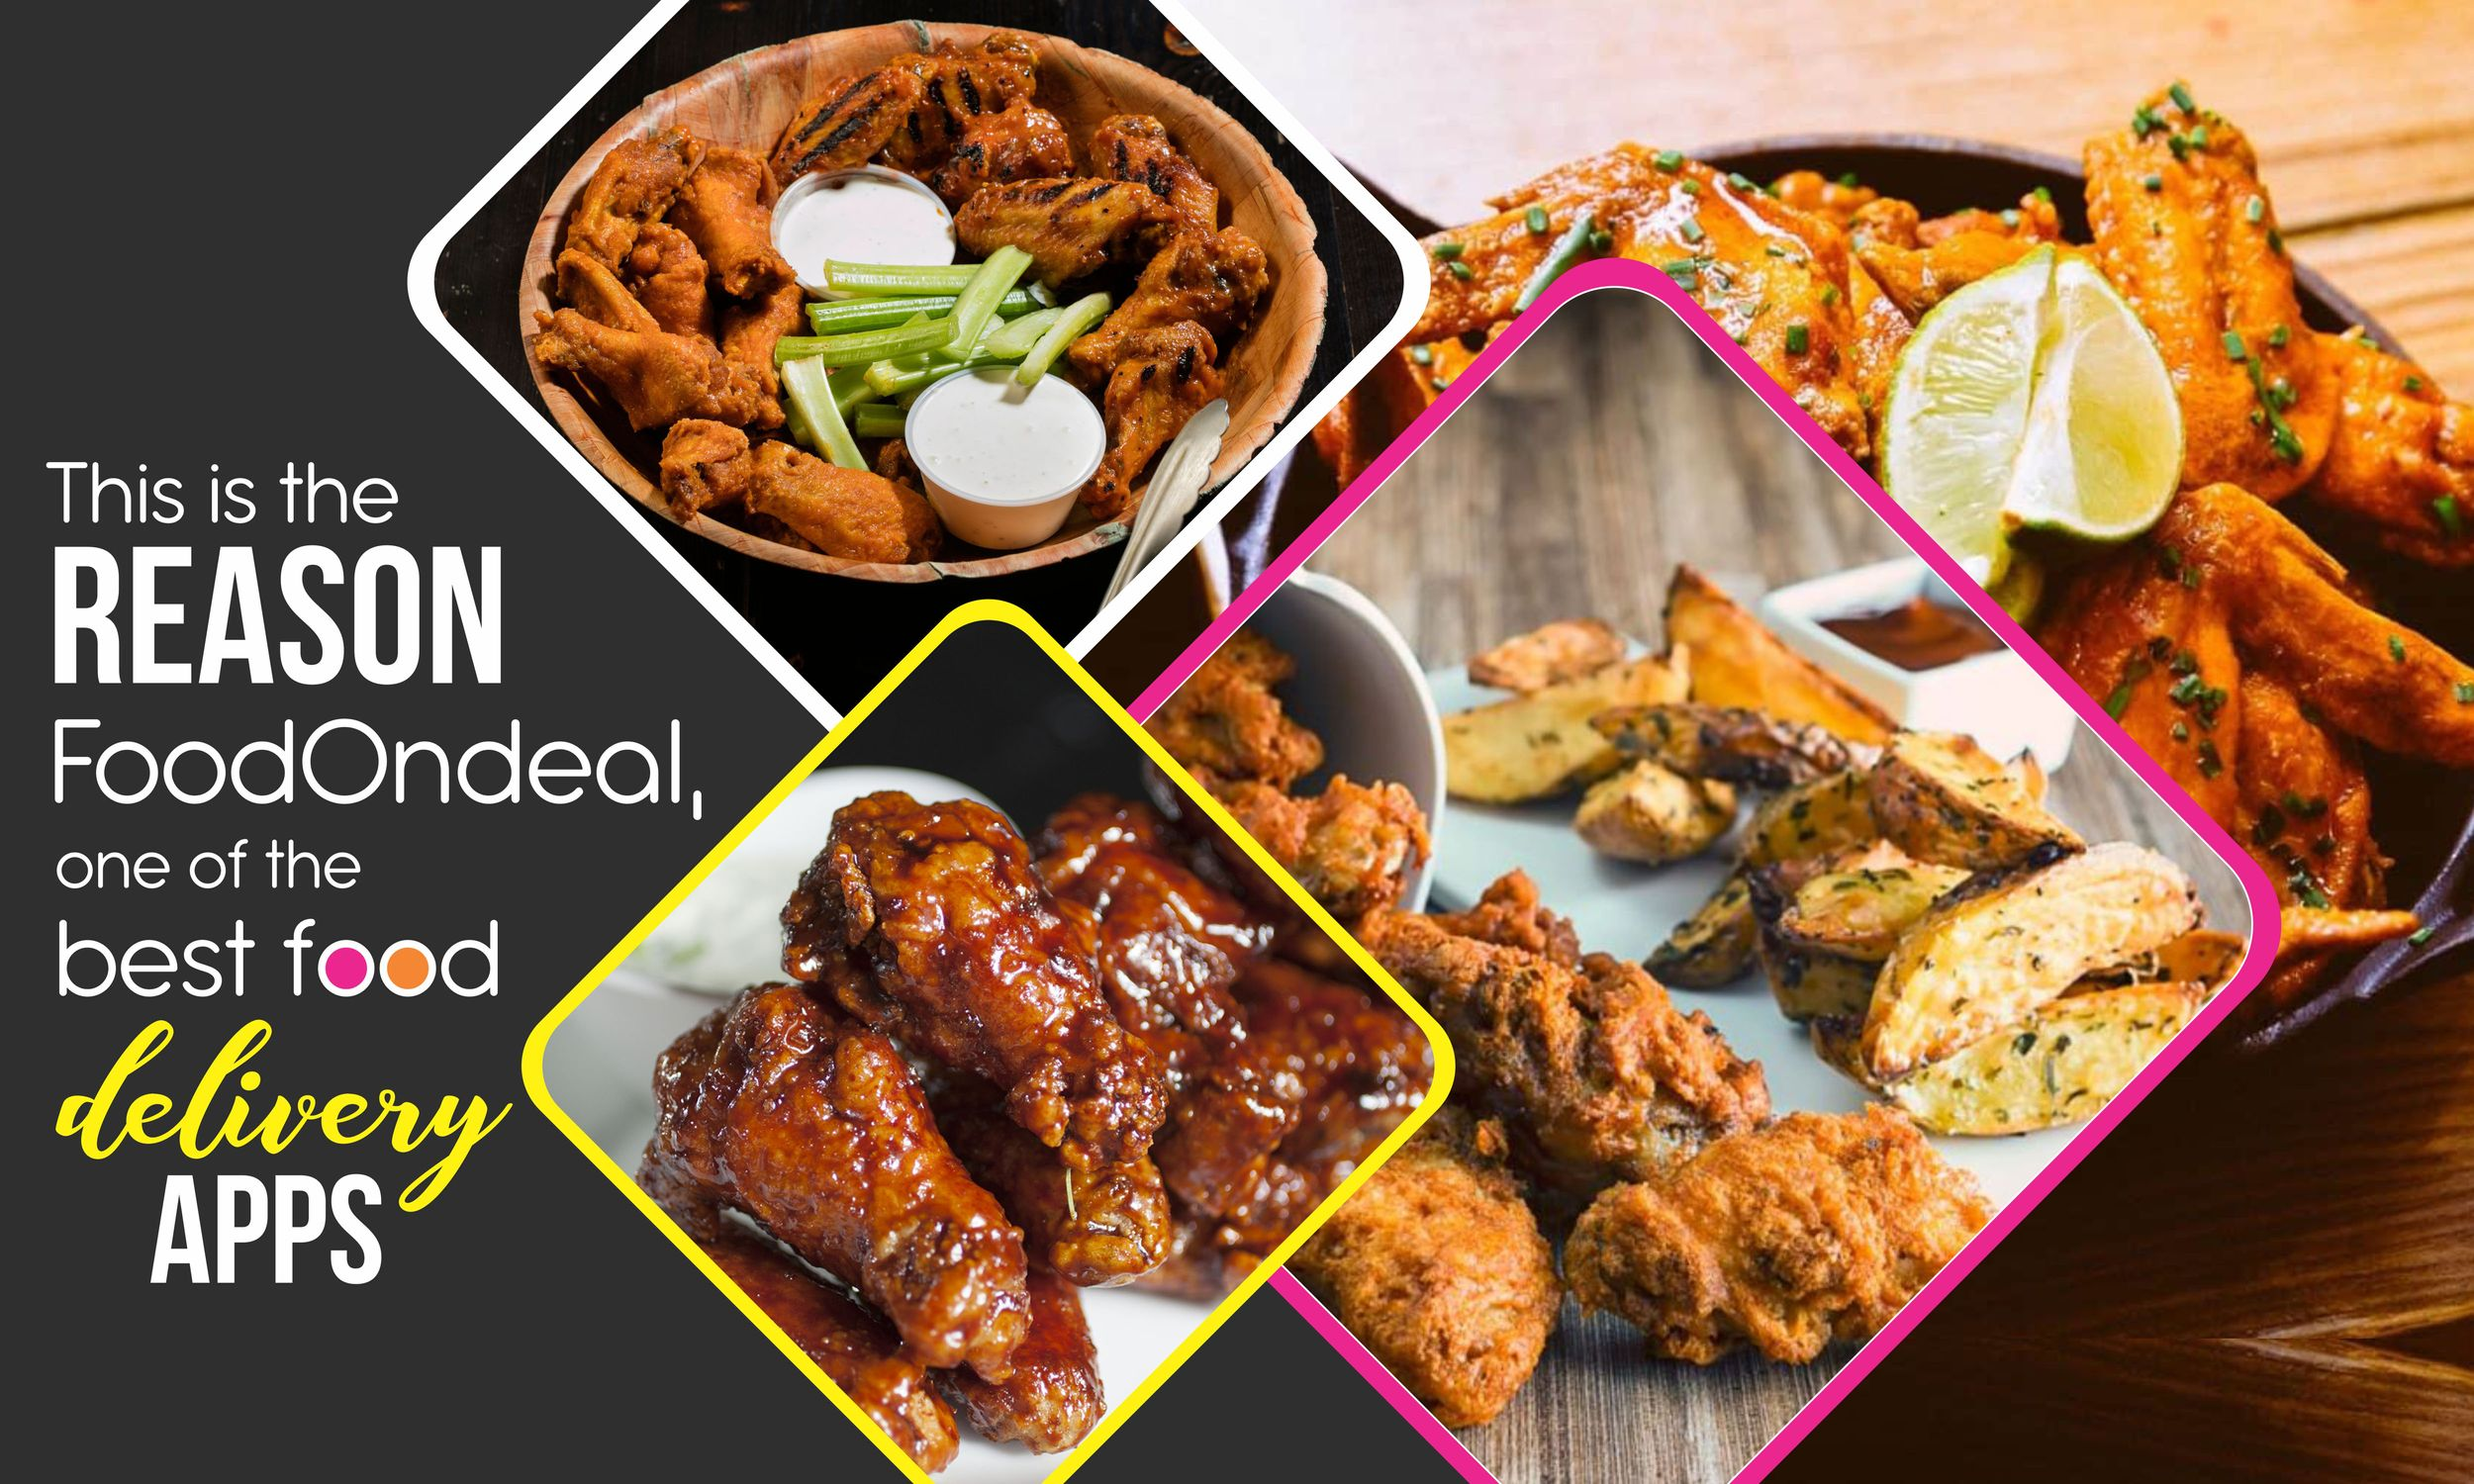 reason of best food delivery apps of foodondeal